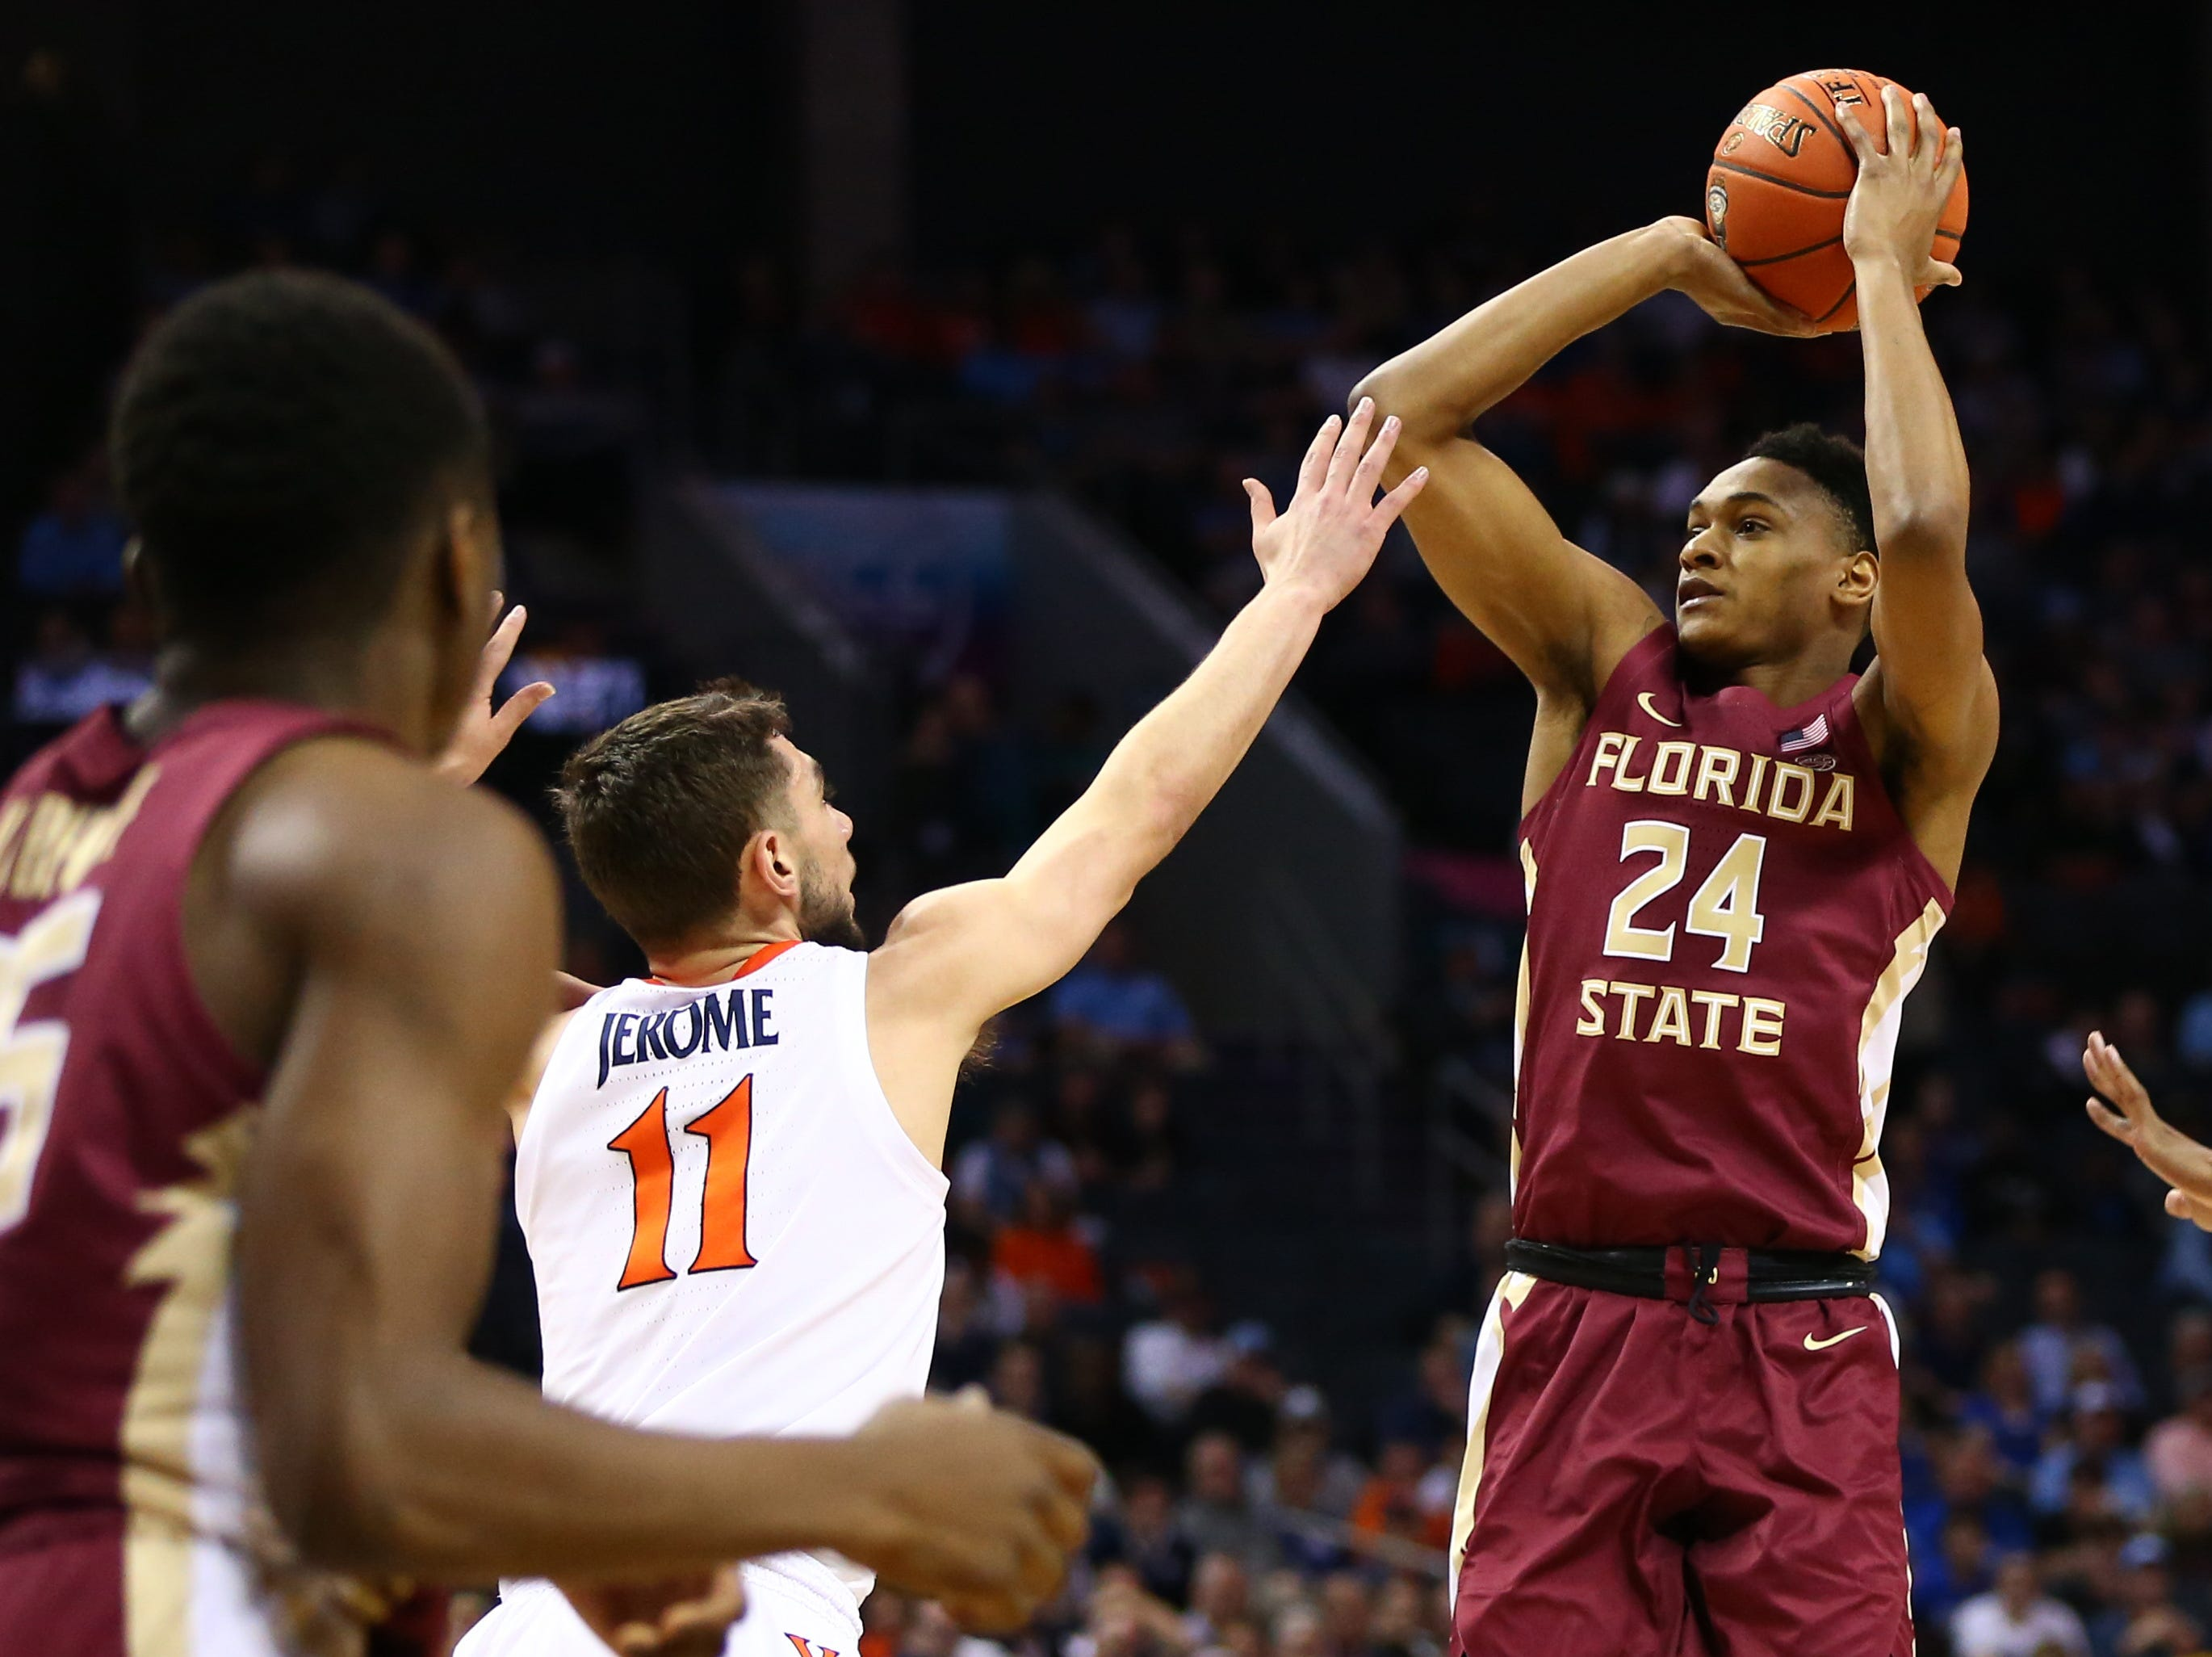 Mar 15, 2019; Charlotte, NC, USA; Florida State Seminoles guard Devin Vassell (24) shoots the ball against Virginia Cavaliers guard Ty Jerome (11) in the first half in the ACC conference tournament at Spectrum Center. Mandatory Credit: Jeremy Brevard-USA TODAY Sports